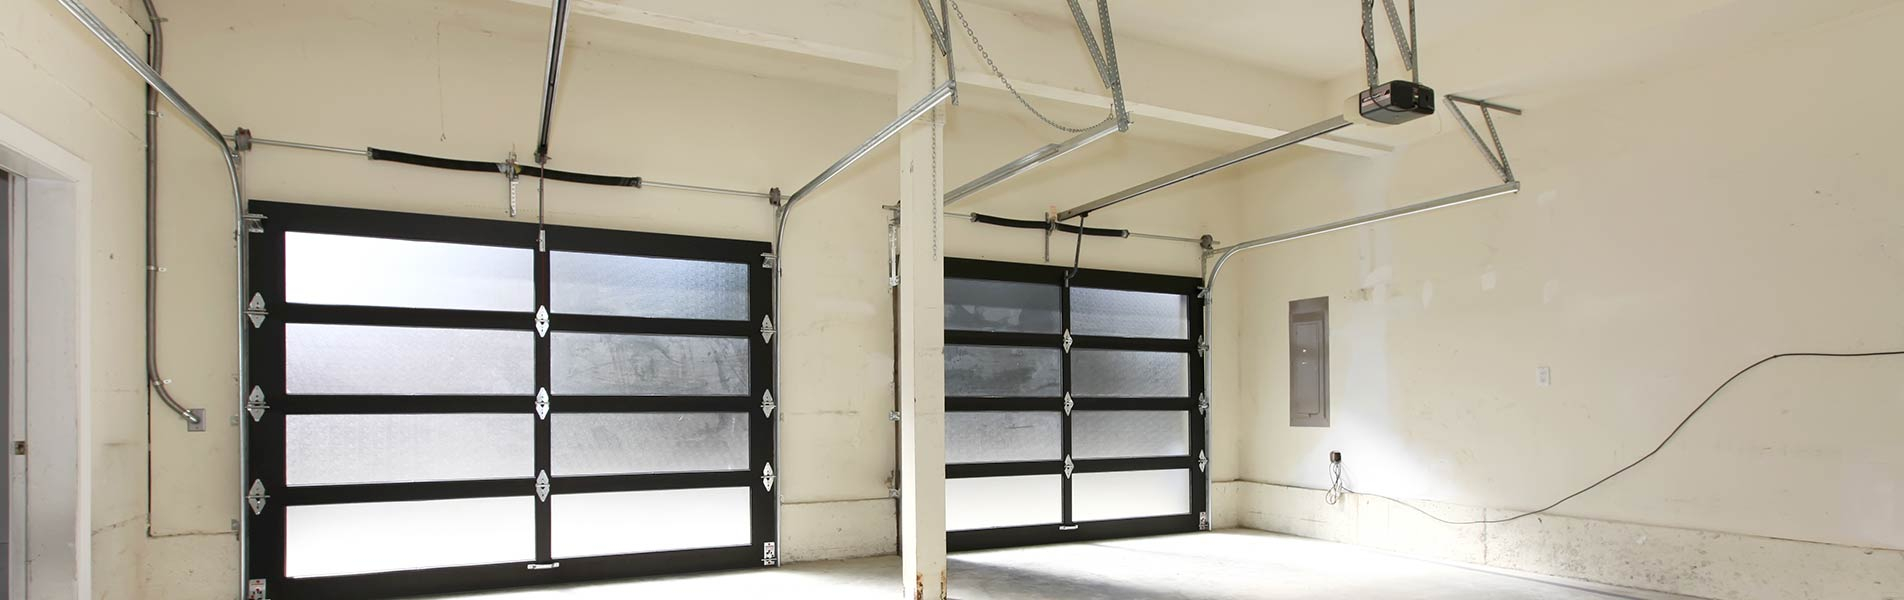 Eagle Garage Door Service Litchfield Park, AZ 877-463-2578